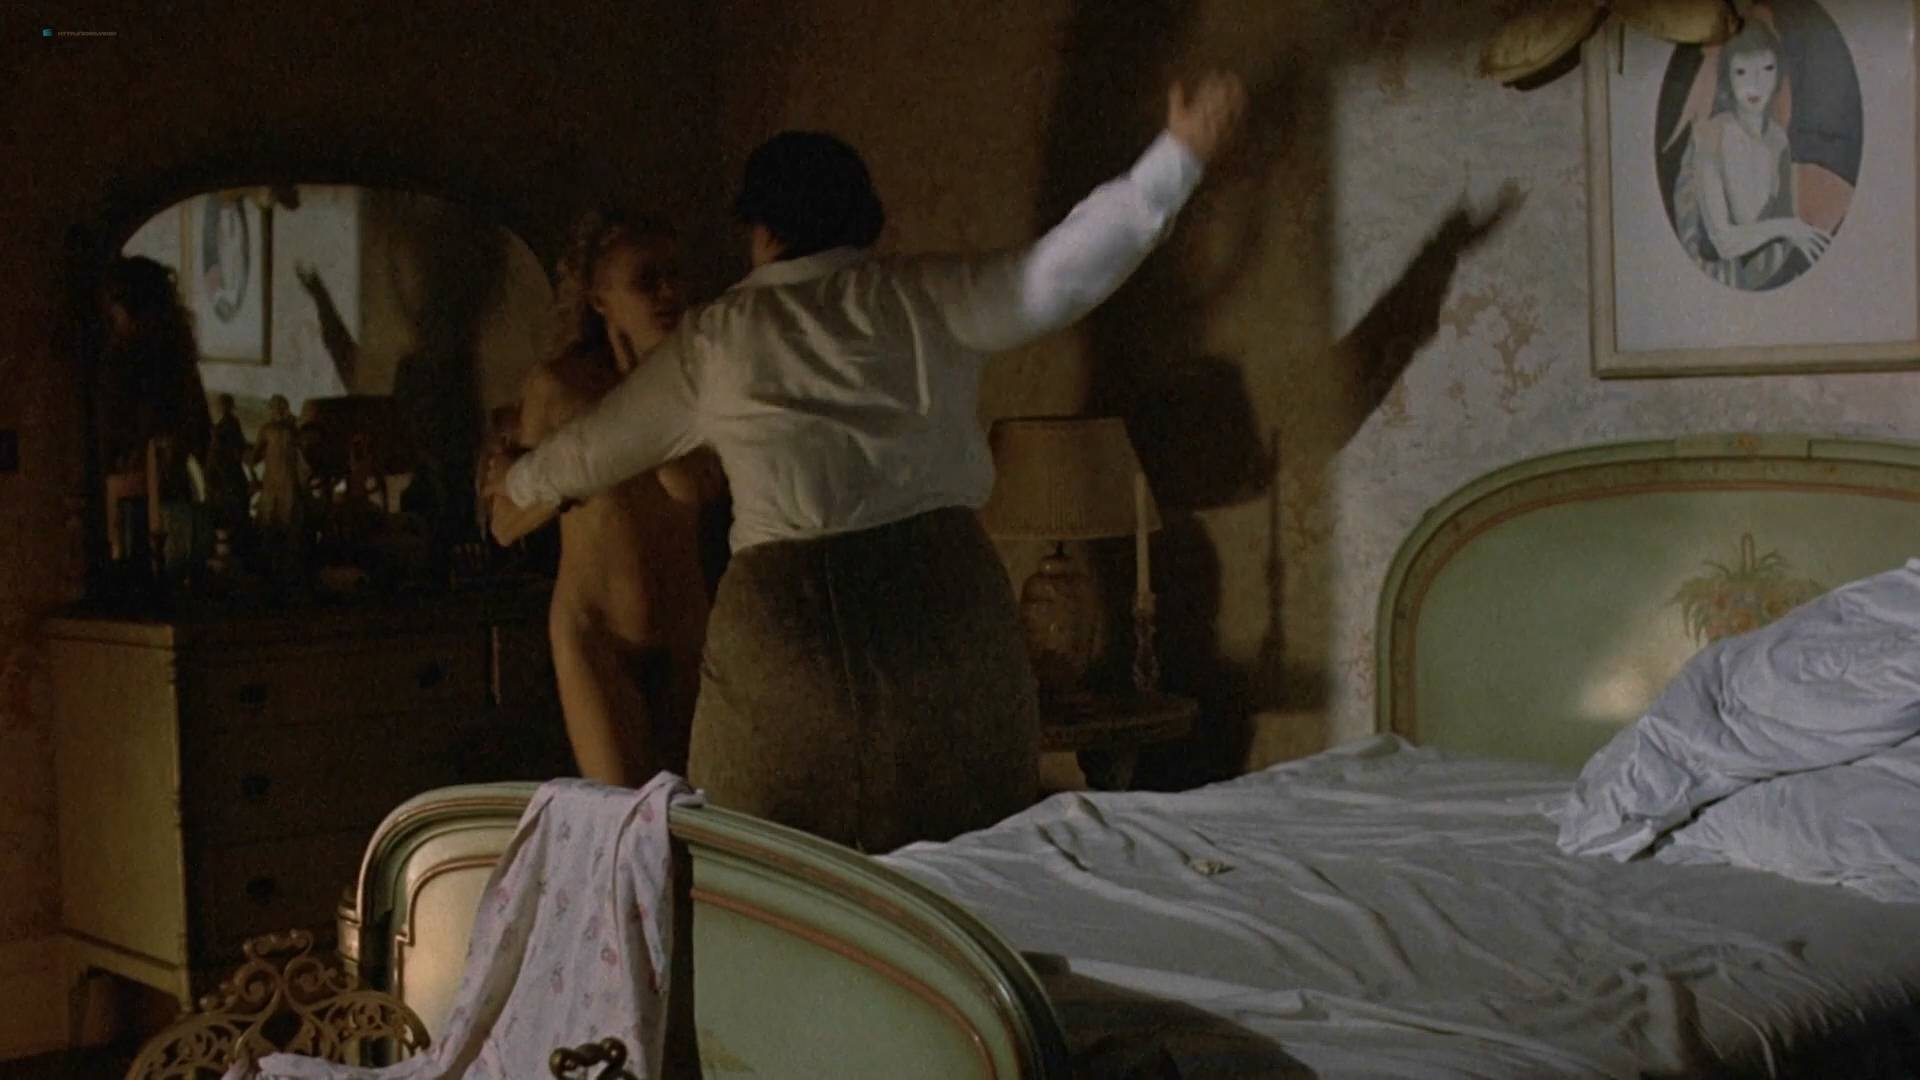 Cheryl Smith nude full frontal - Farewell, My Lovely (1975) HD 1080p BluRay (3)